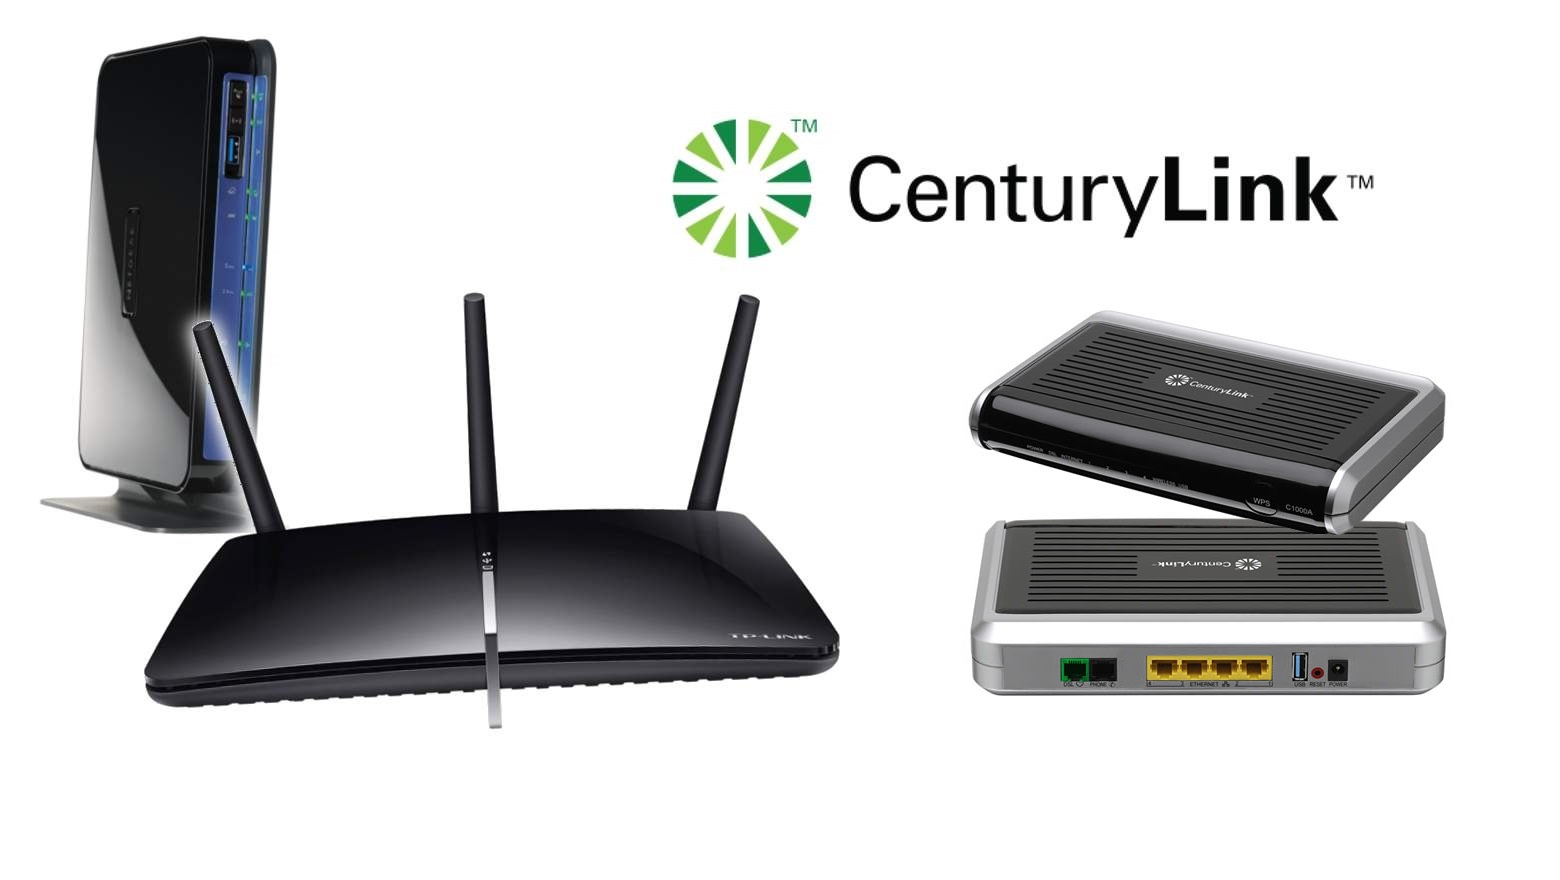 pk5001a centurylink modem wiring diagram wiring library best centurylink modem make the selection hassle this guide